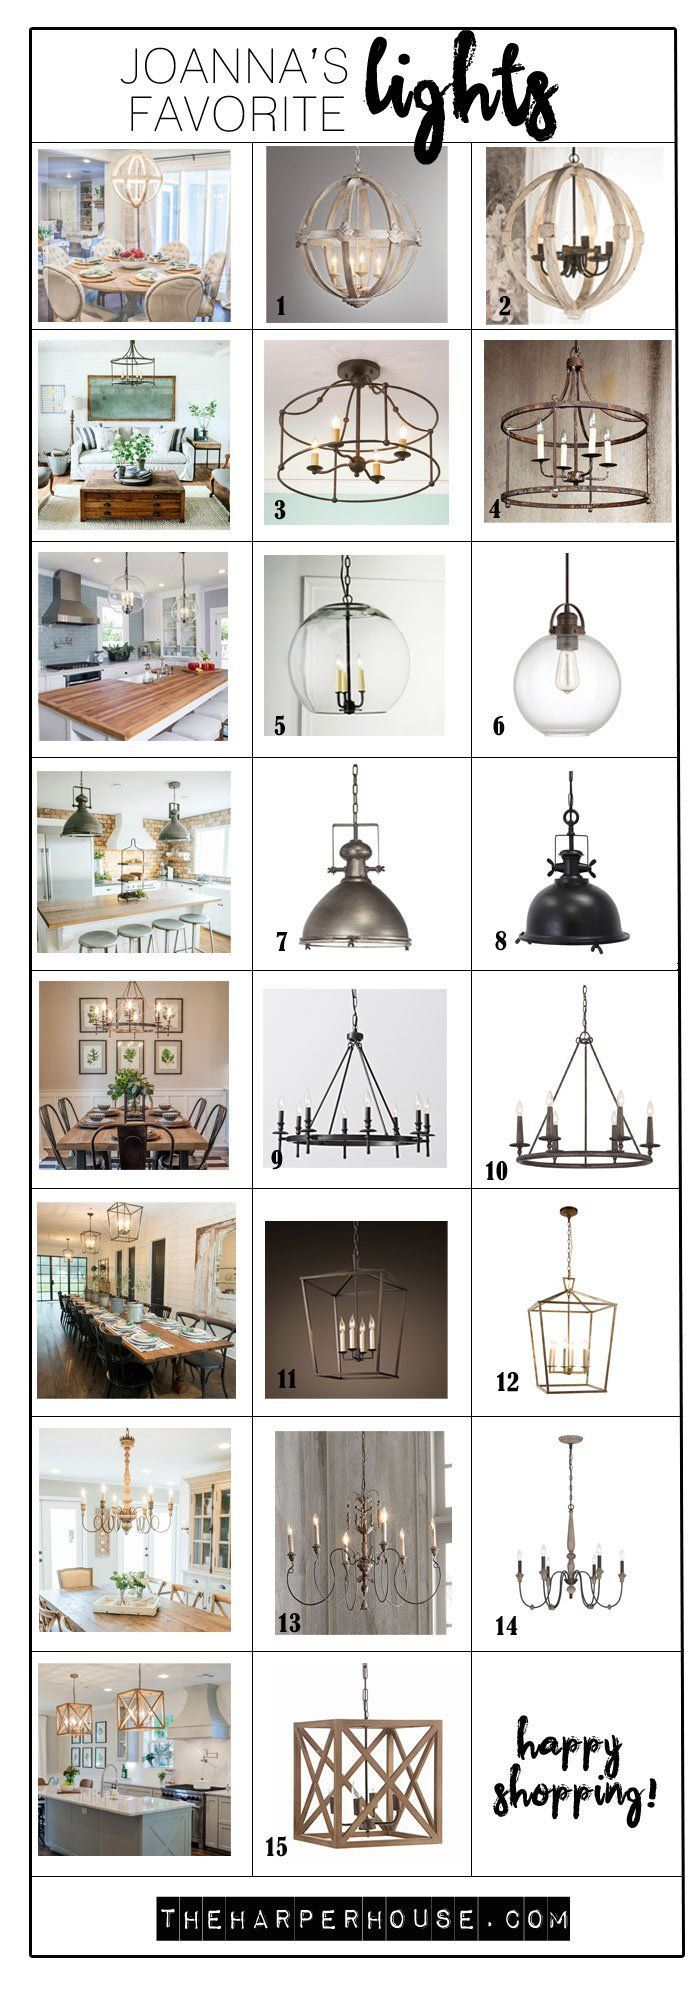 Favorite Light Fixtures for Fixer Upper Style | The Harper House